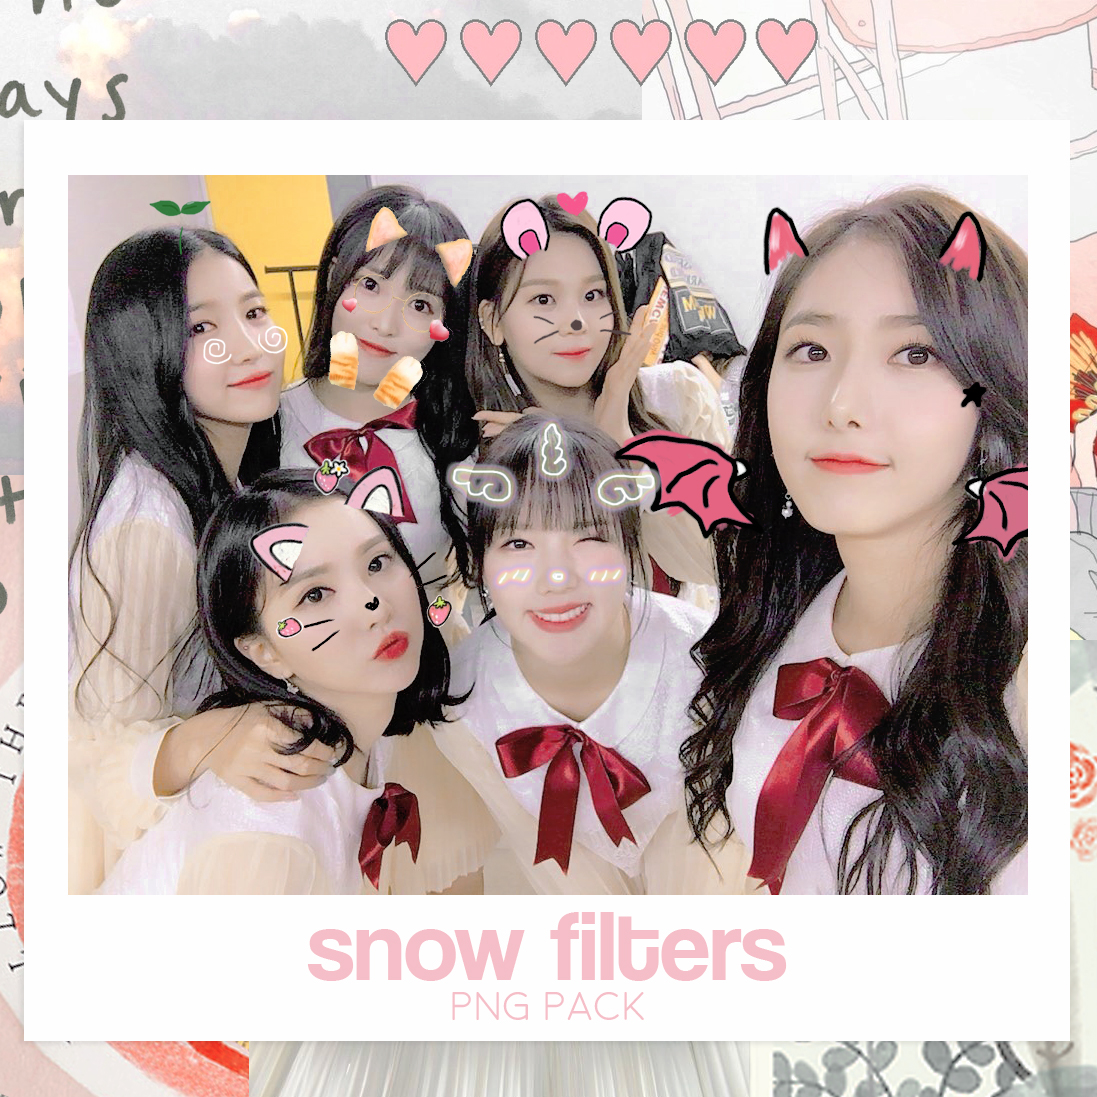 Snow Filters 02 Png Pack By Dreamysunflower9 On Deviantart